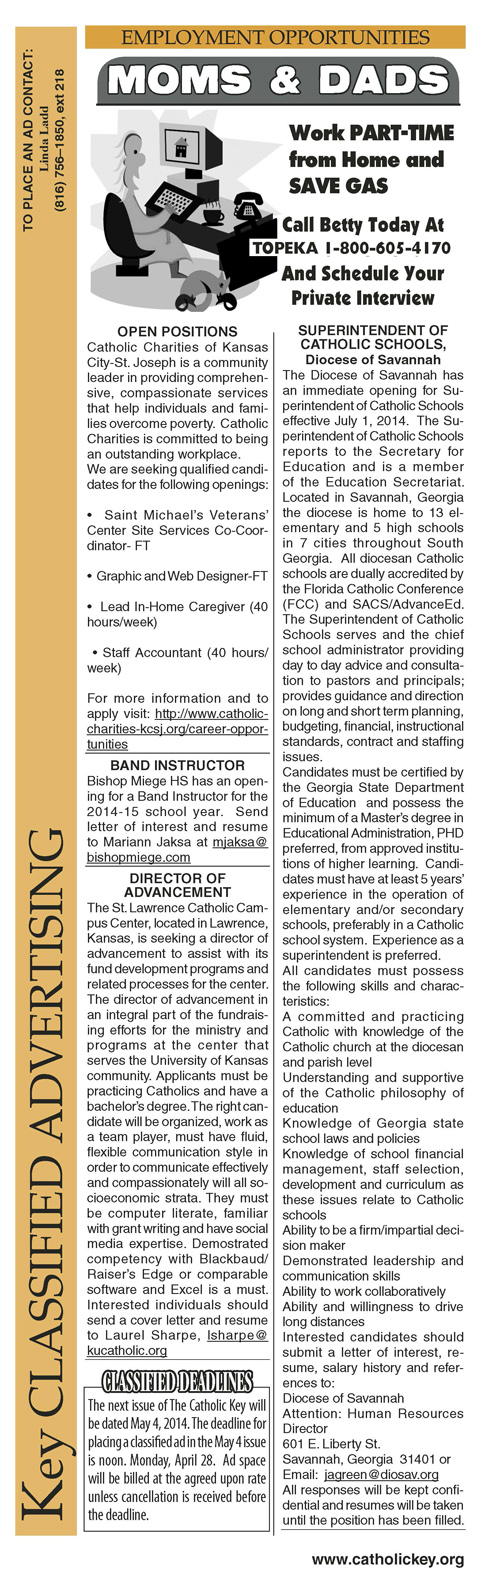 Key Classifieds - April 18, 2014, page 1